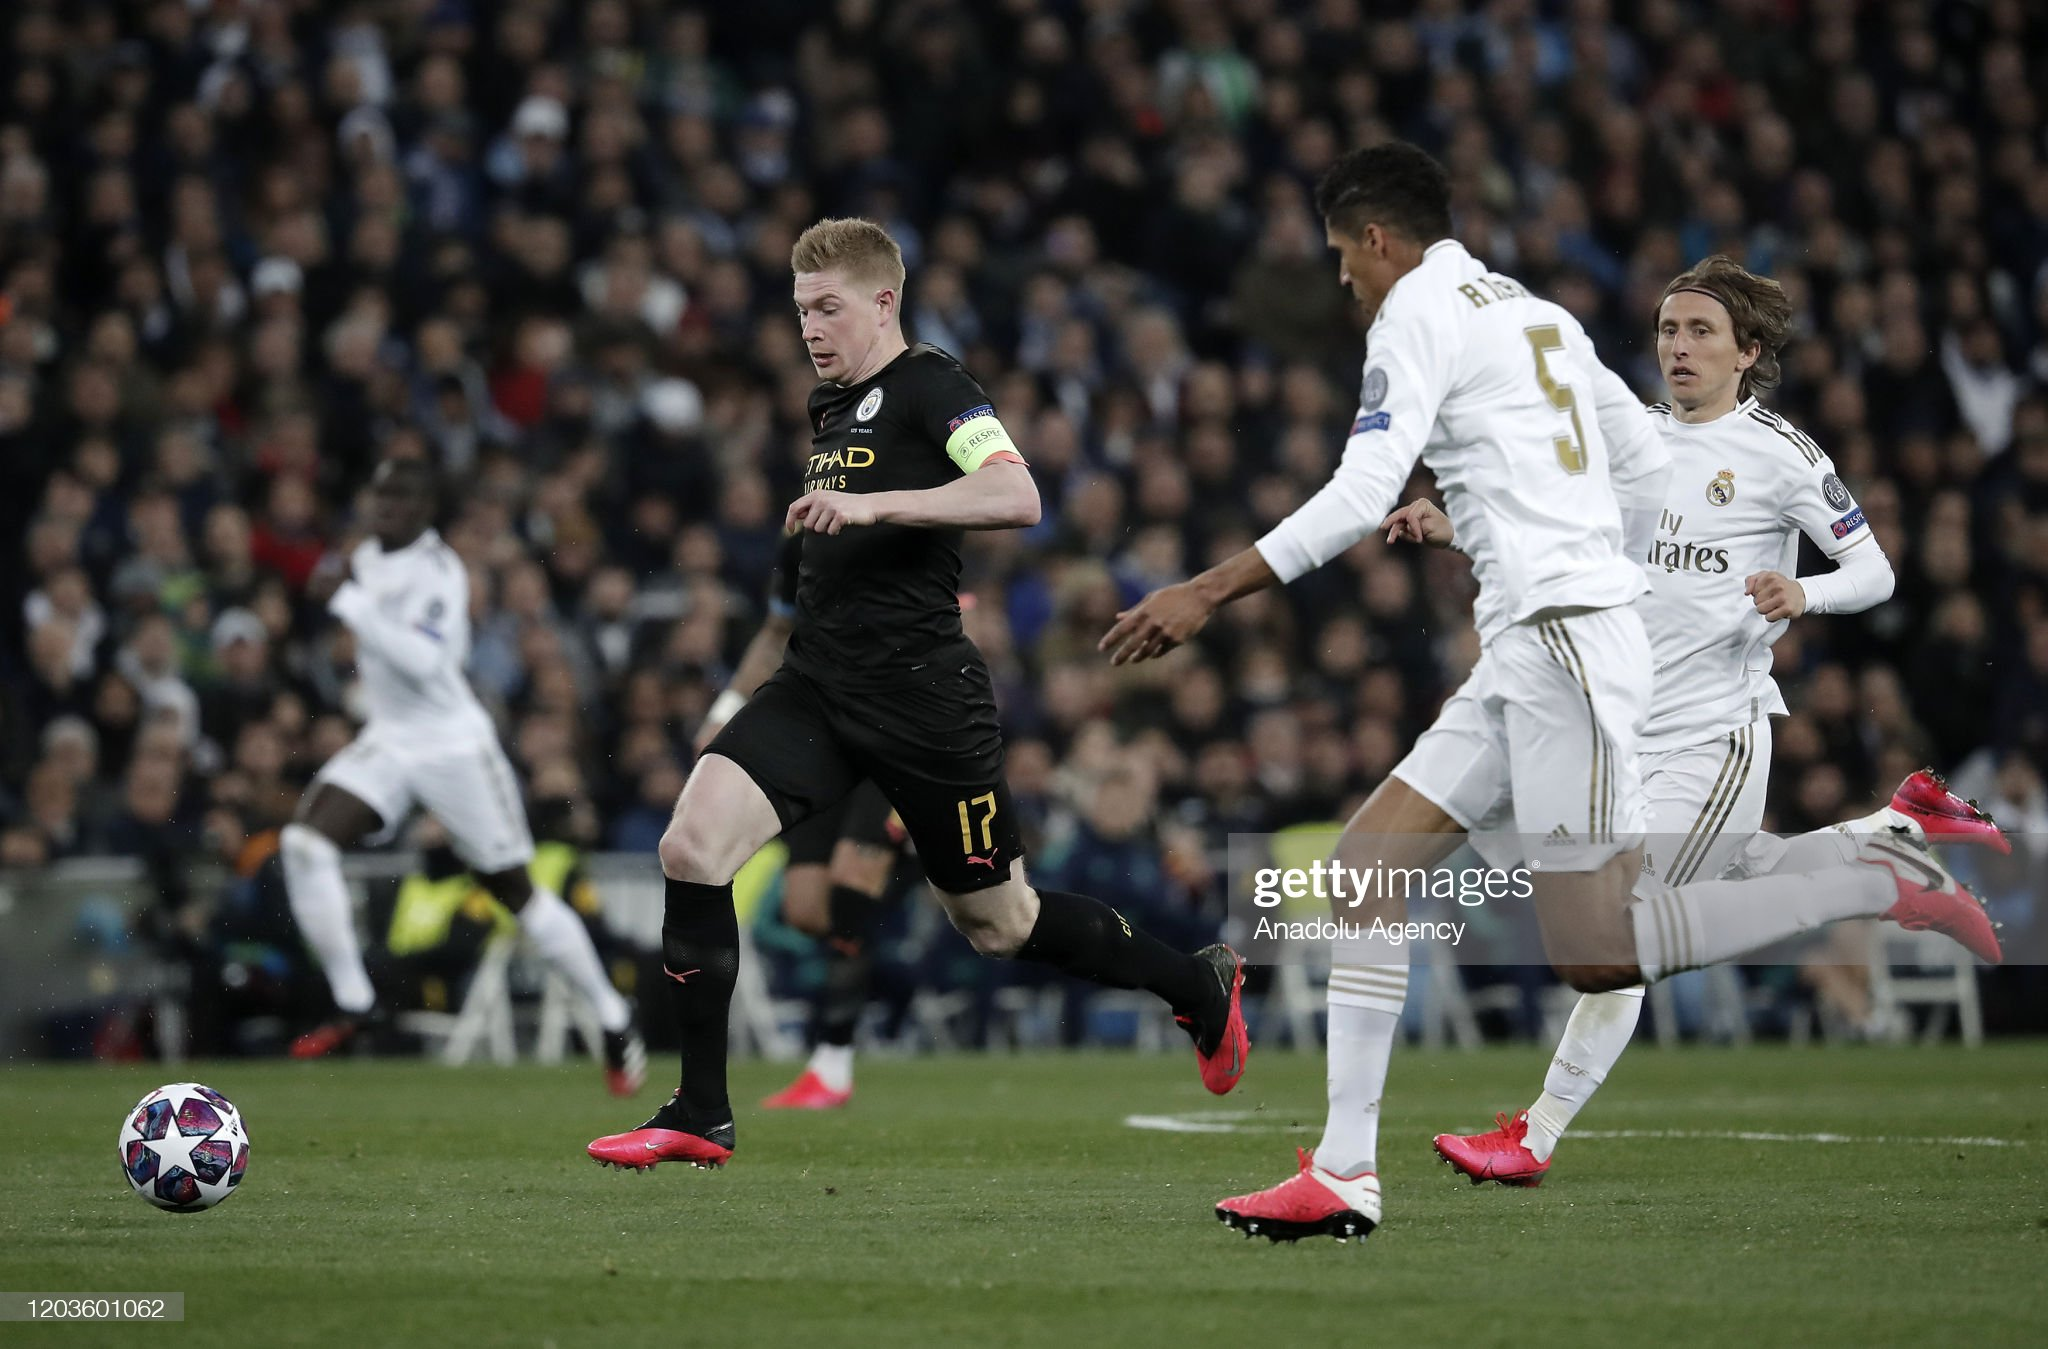 Manchester City vs Real Madrid Preview, prediction and odds